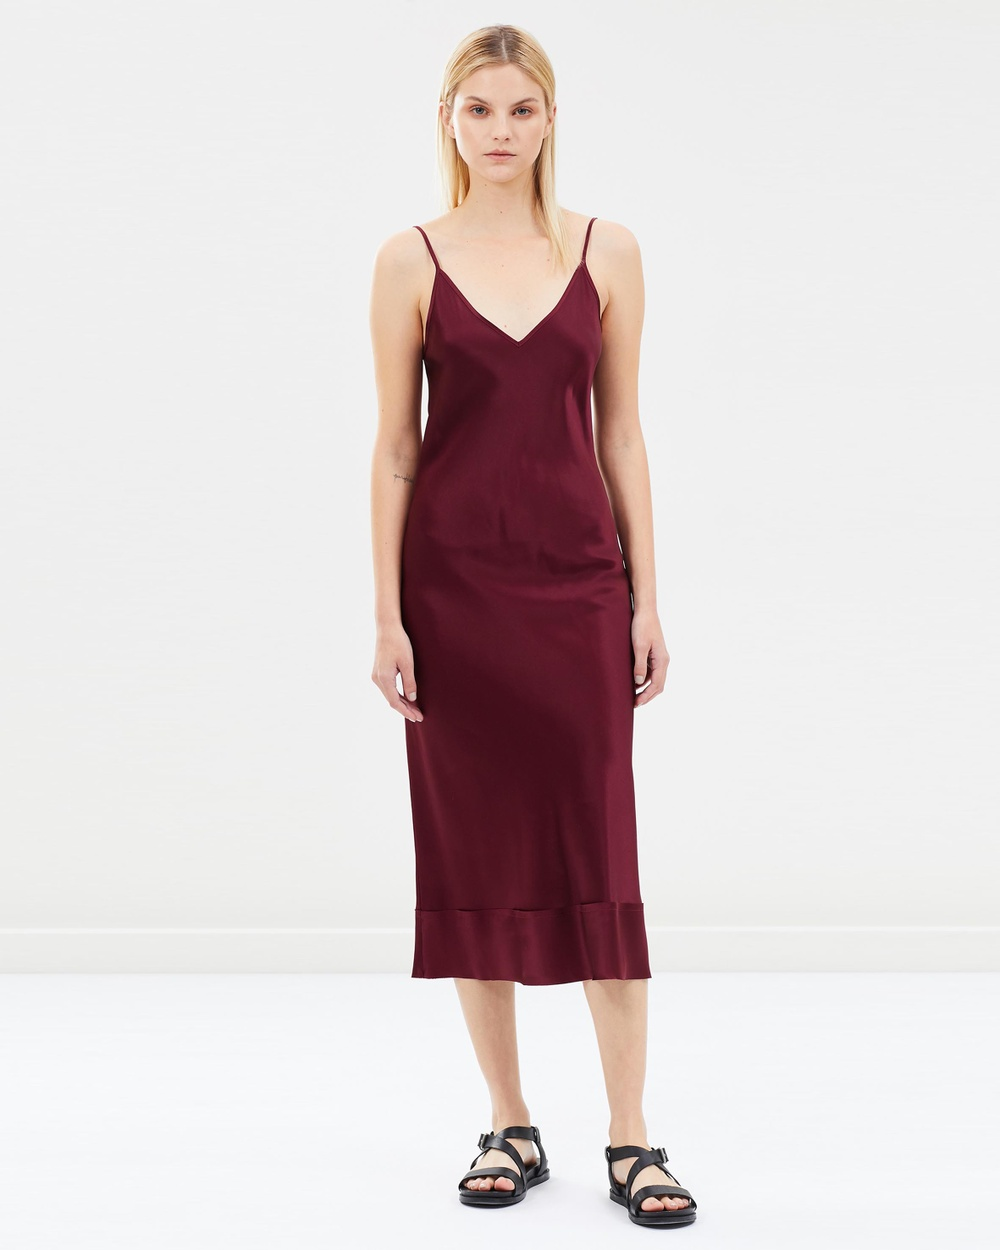 Lee Mathews Plum Rose Silk Satin V-Neck Slip Dress